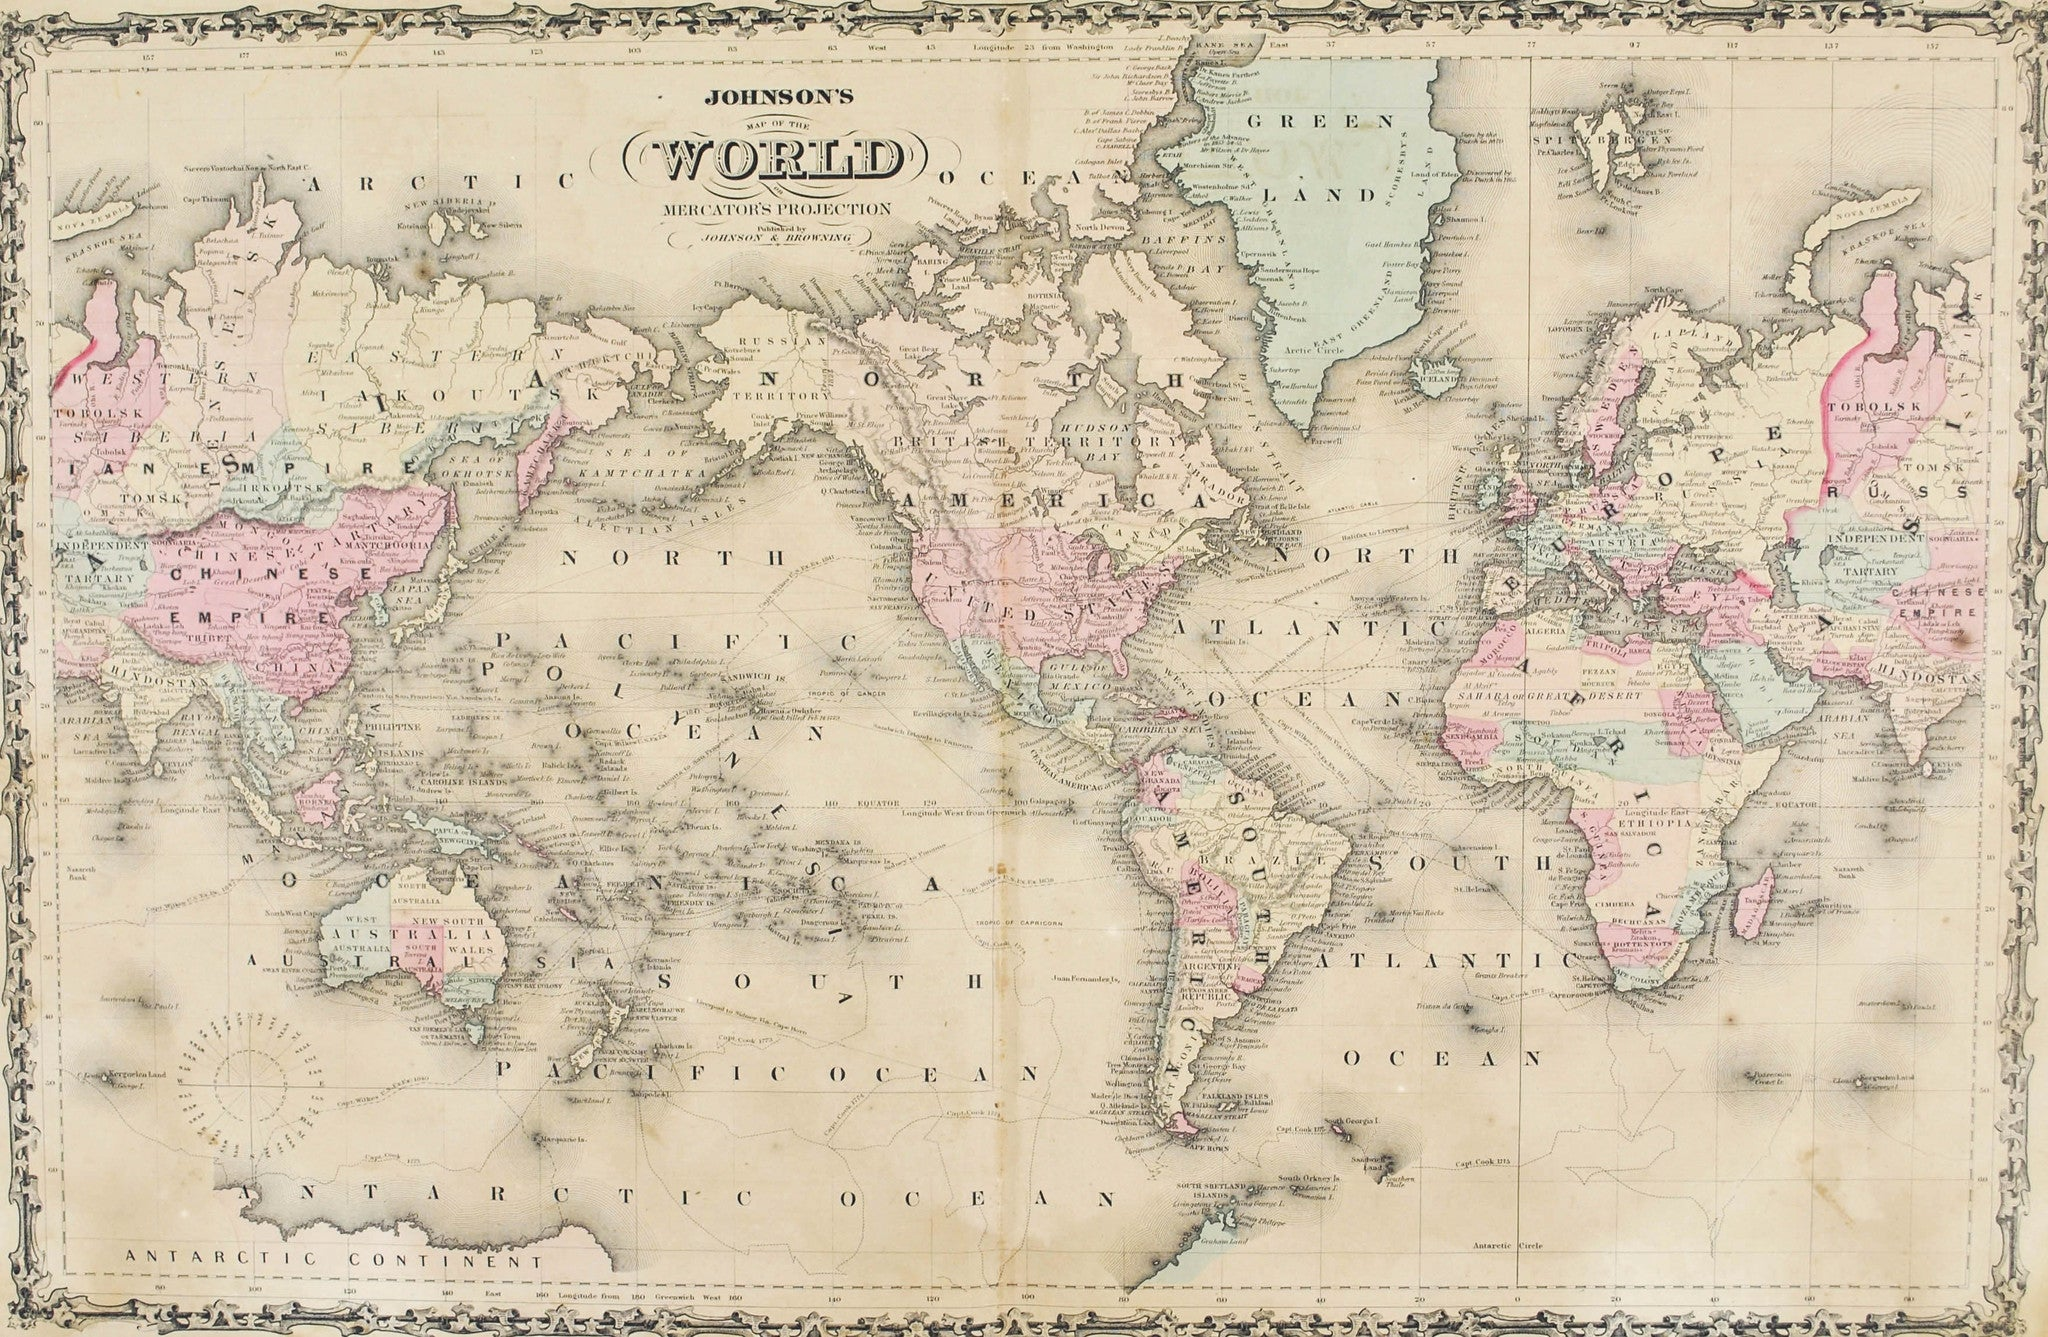 1860 Map of the World in Mercator's Projection   Johnson